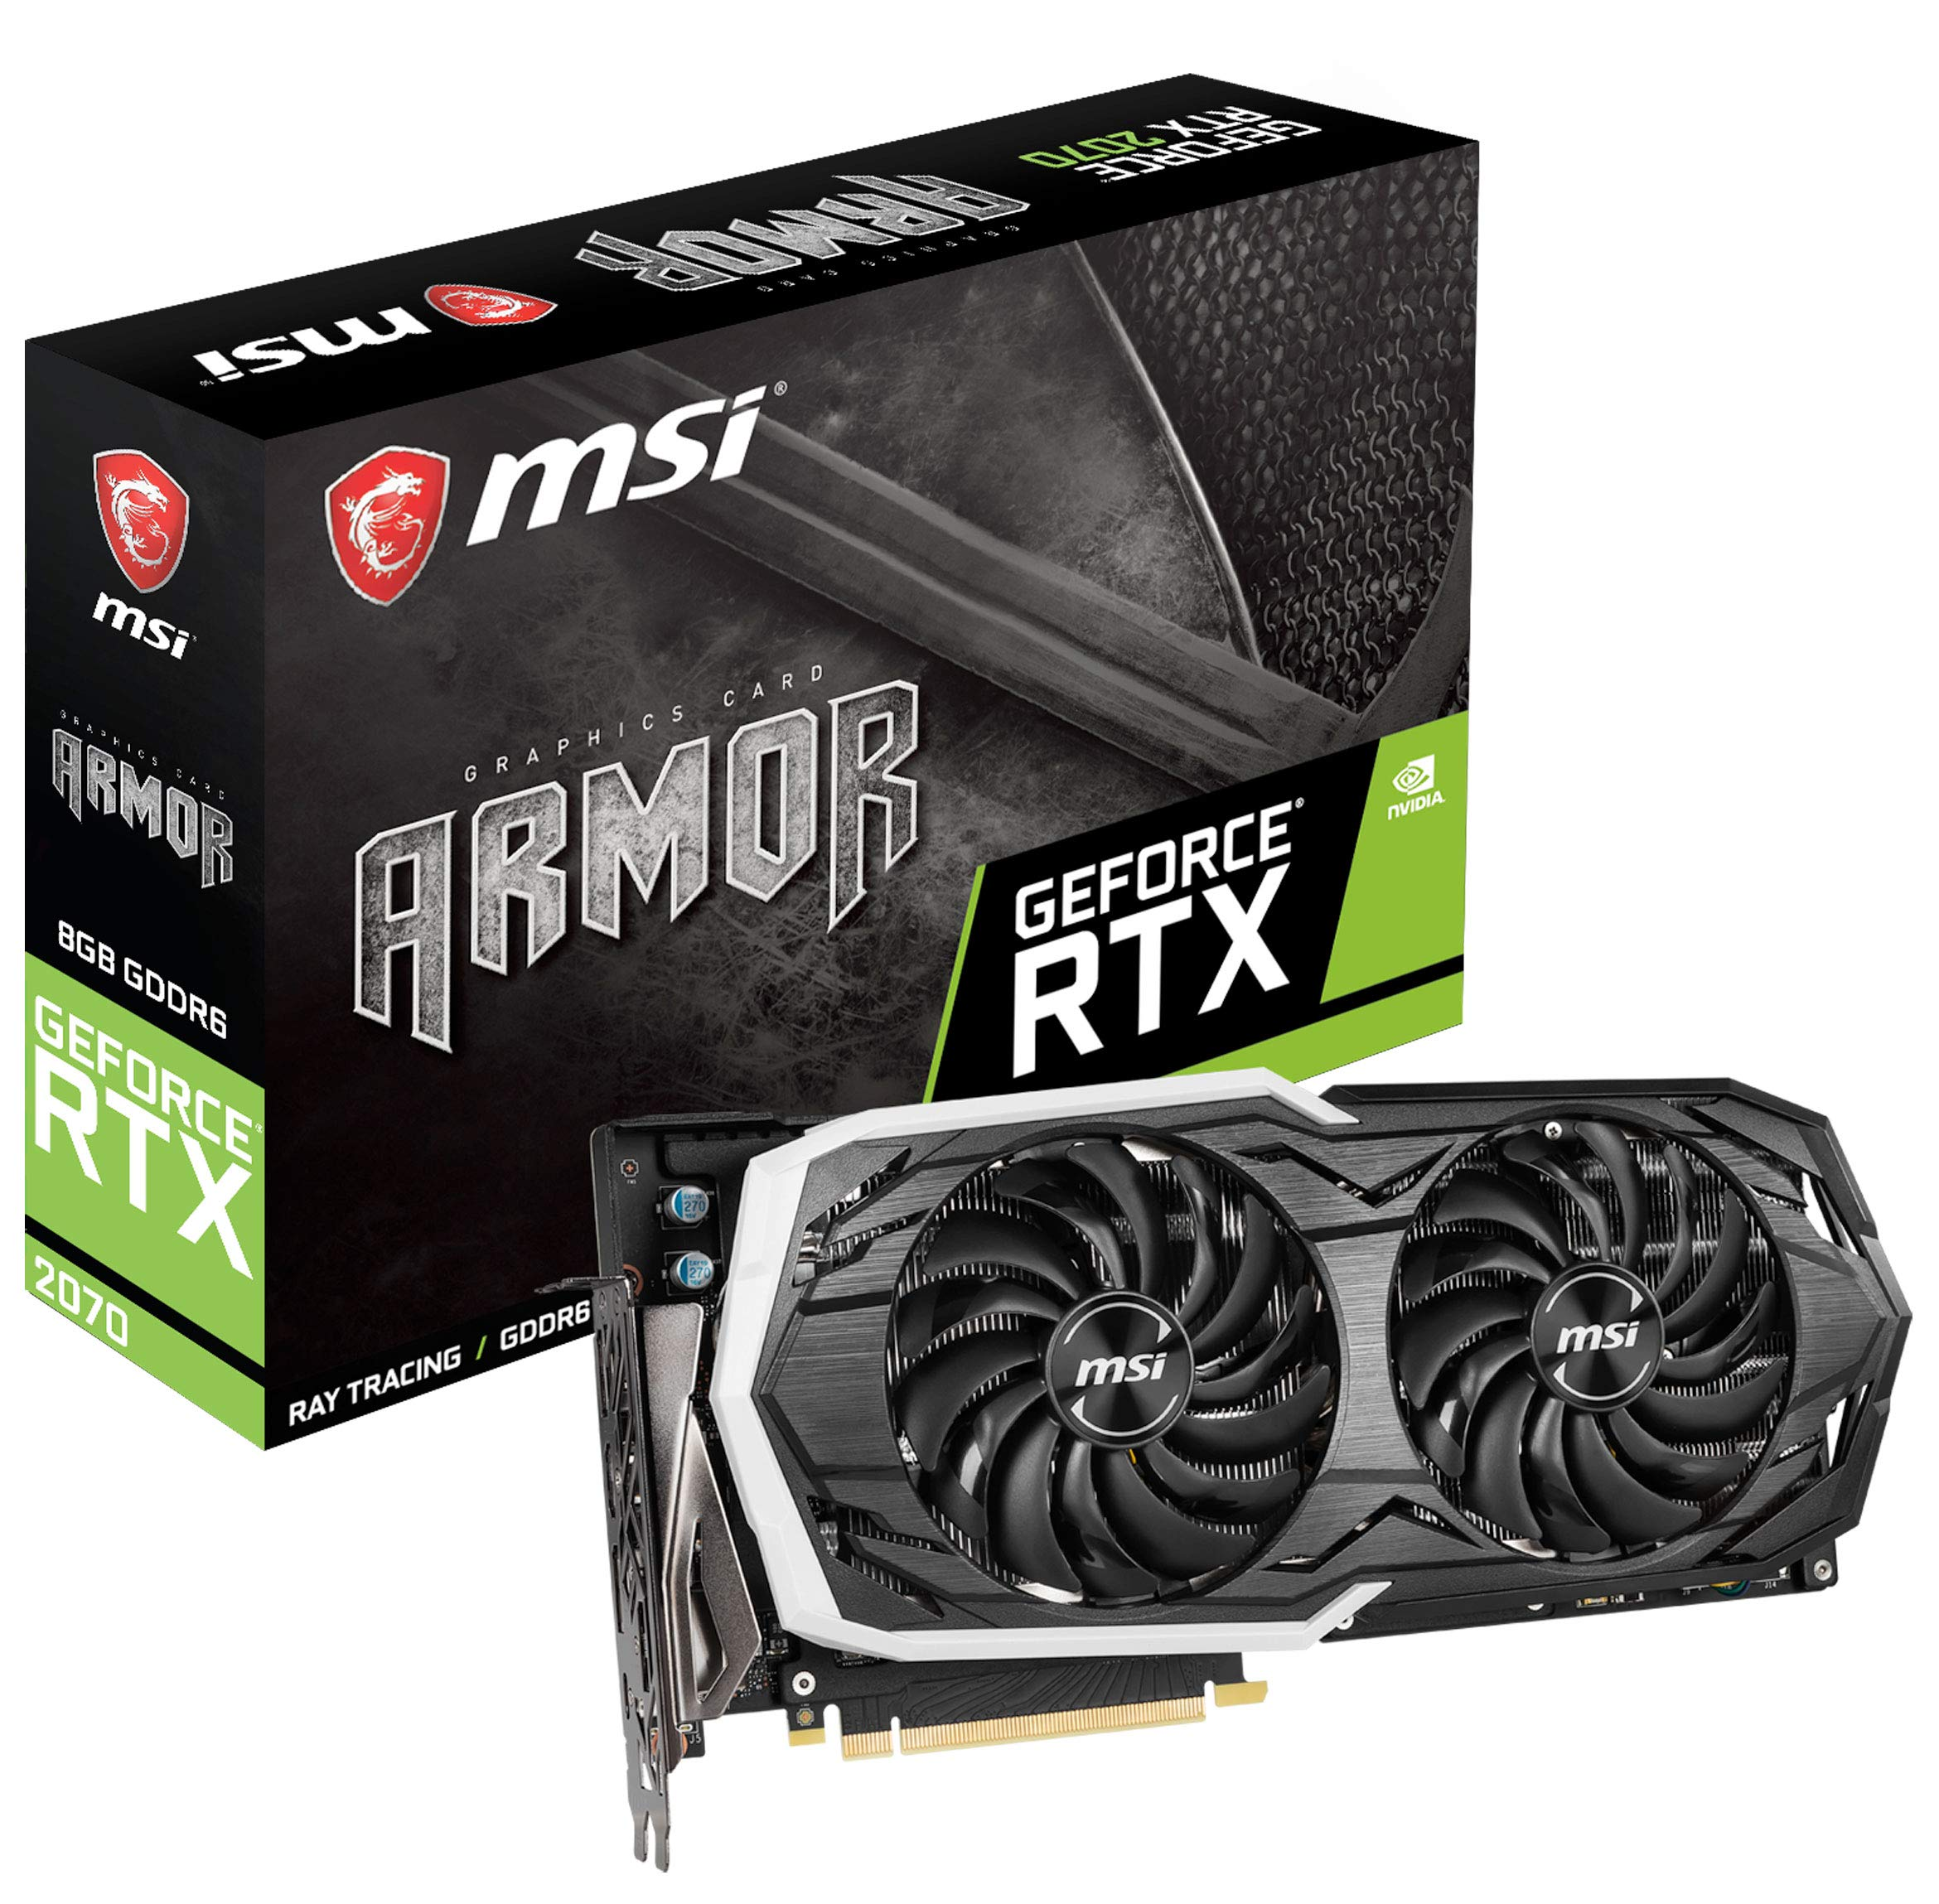 MSI GAMING GeForce RTX 2070 8GB GDRR6 256-bit HDMI/DP/USB Ray Tracing Turing Architecture HDCP Graphics Card (RTX 2070 ARMOR 8G) by MSI